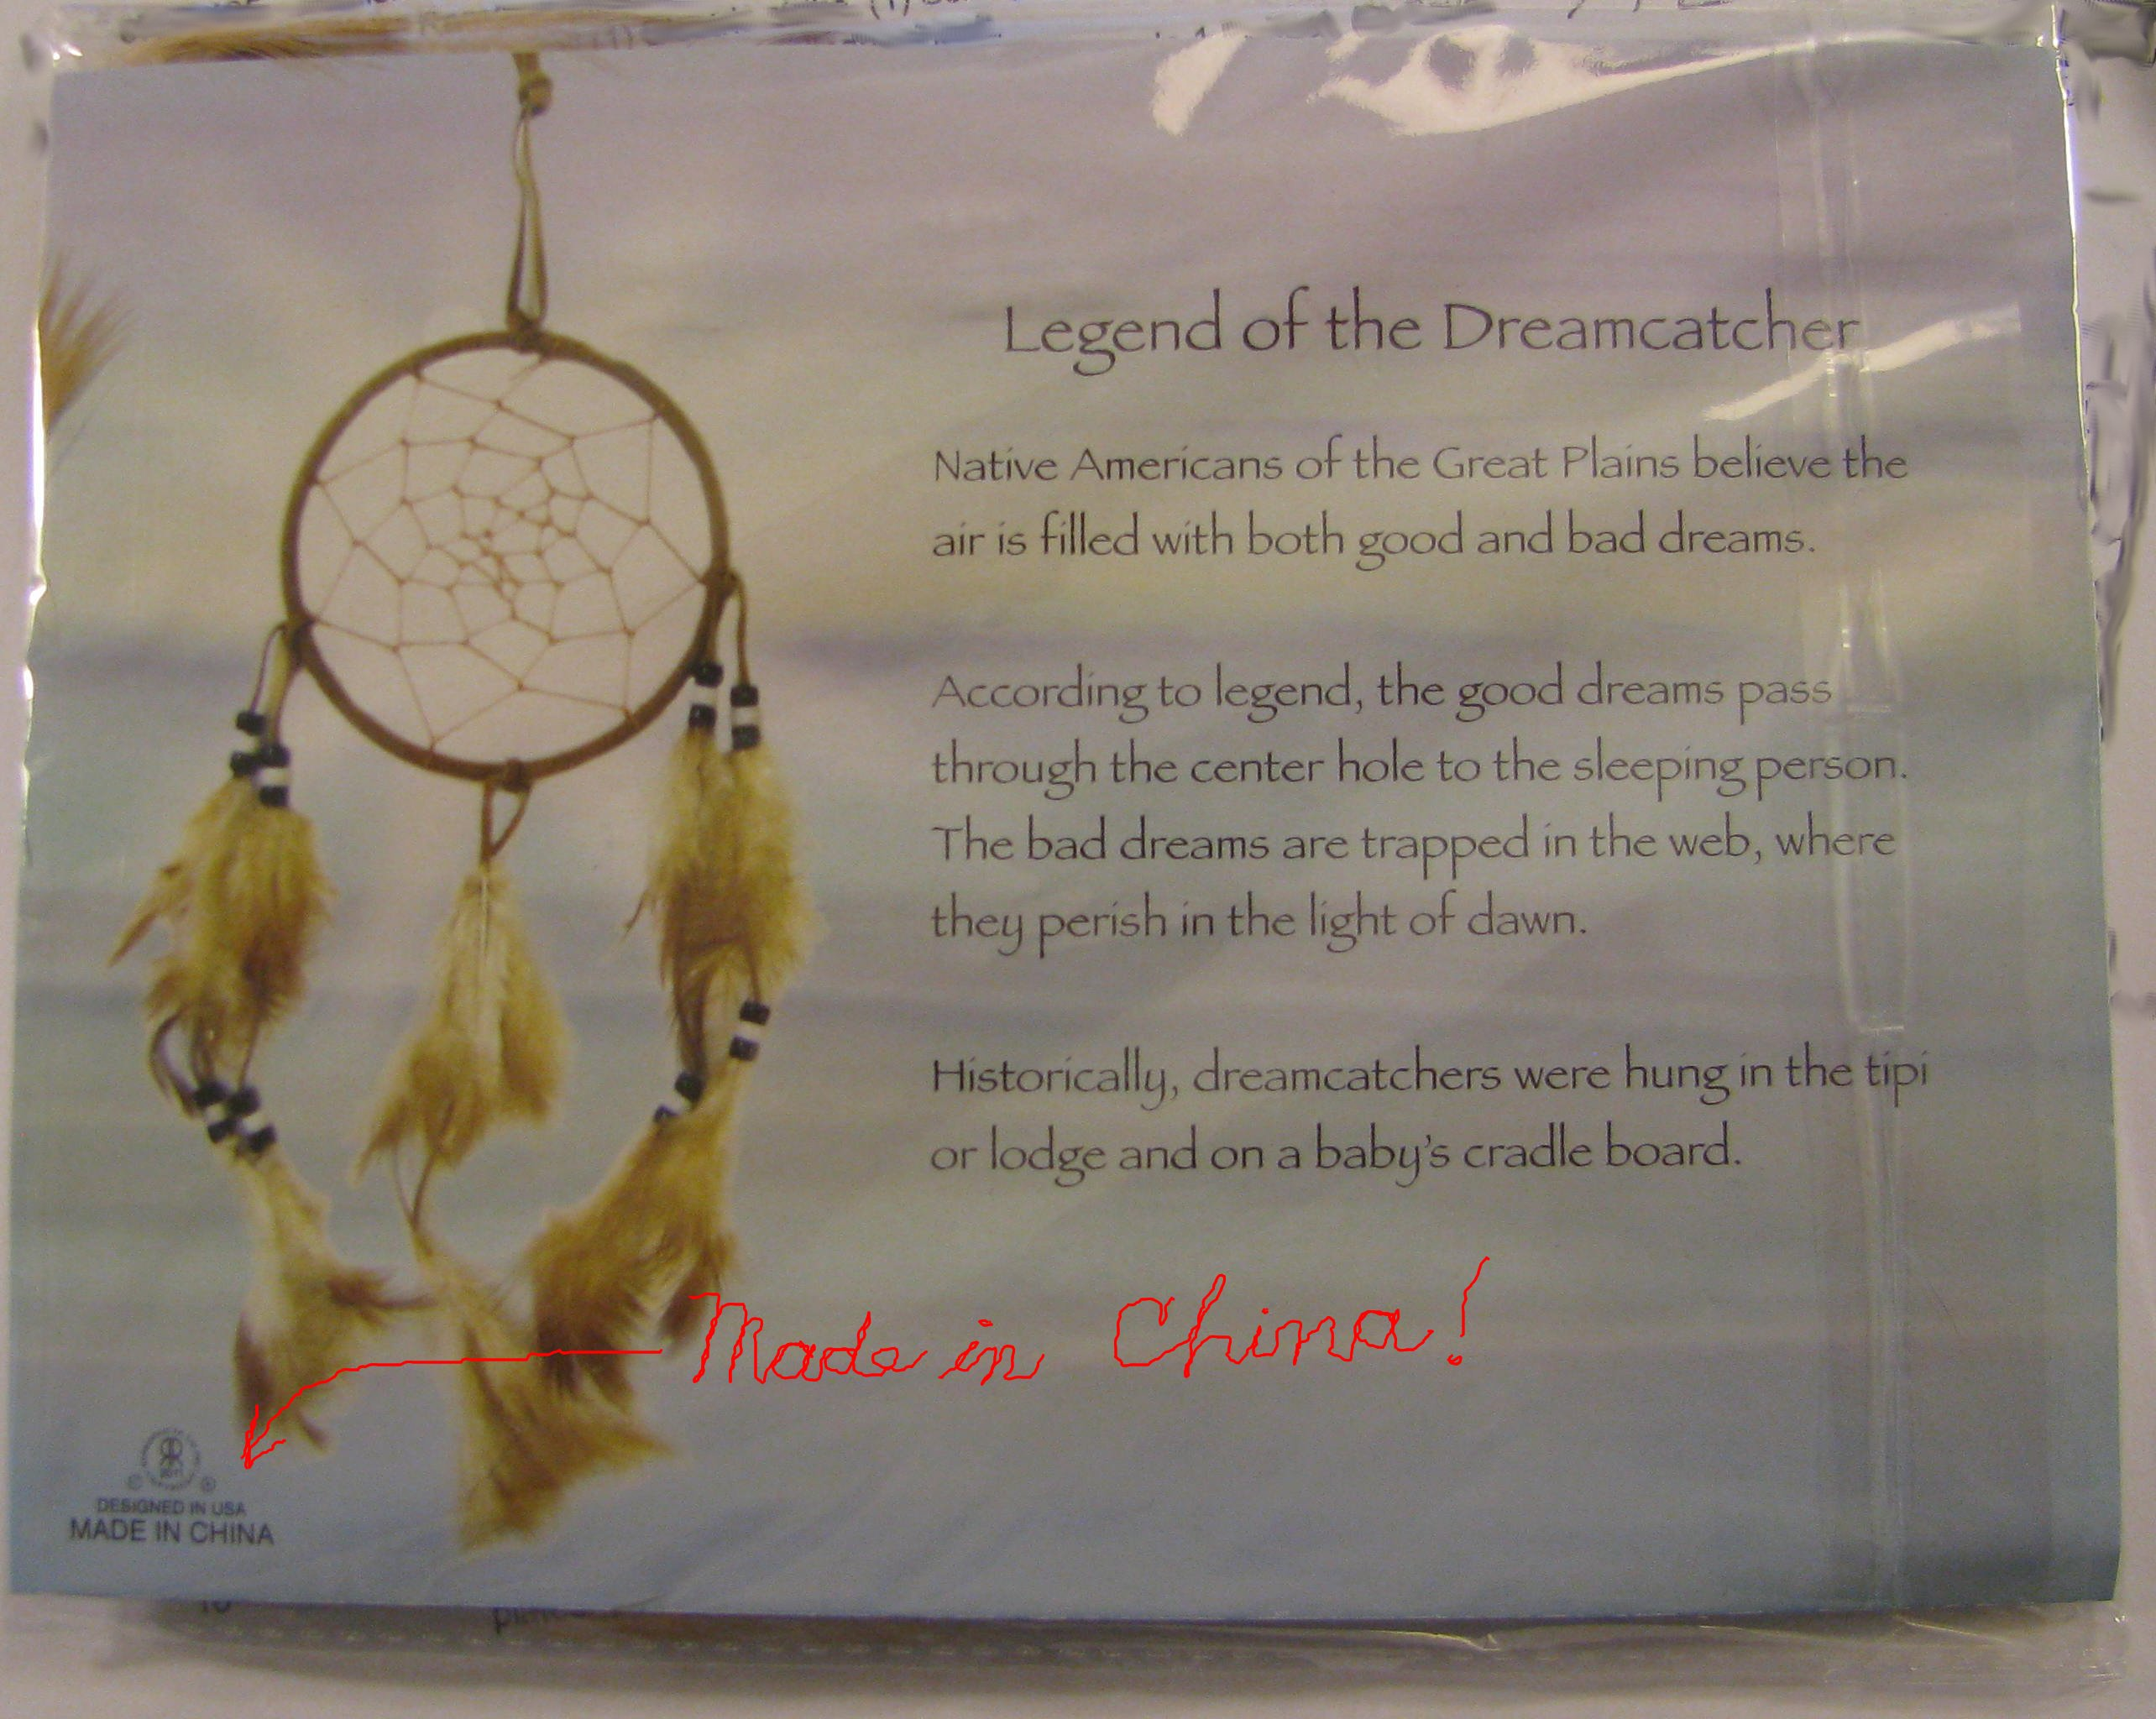 2011 Check Out The Dream Catchers Remarked Upon By Several People In Comments Below That Are Currently Being Included Guilt Mailings From St